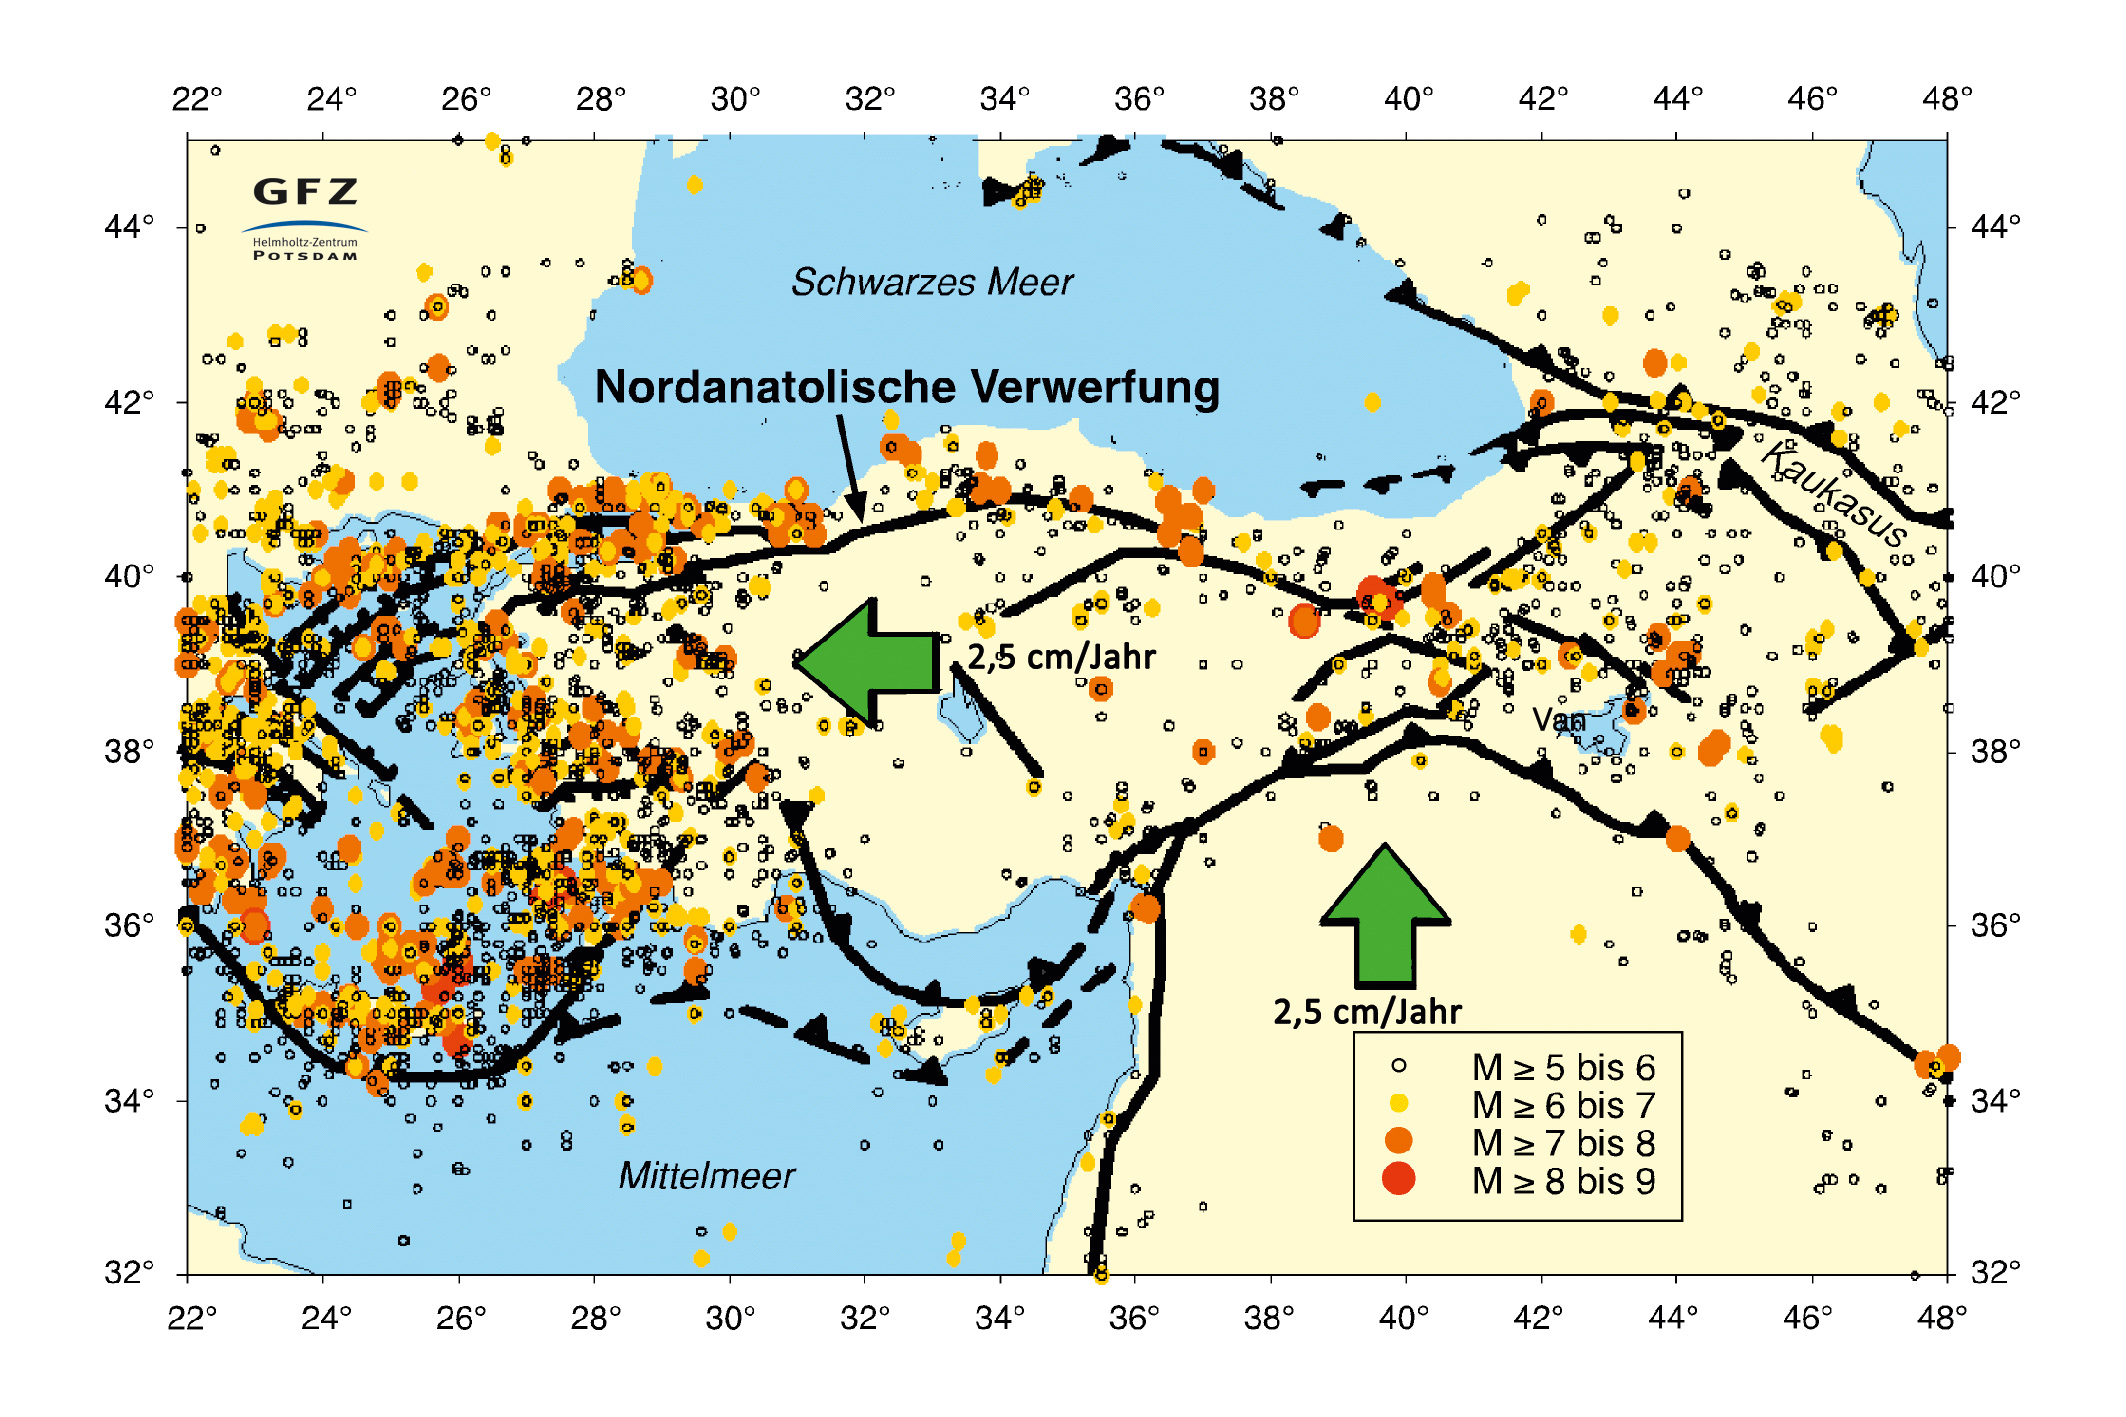 Istanbulthe earthquake risk of a megacity seismic risk in turkey epicentres and main fault zones gfz deutsches geoforschungszentrum gumiabroncs Choice Image